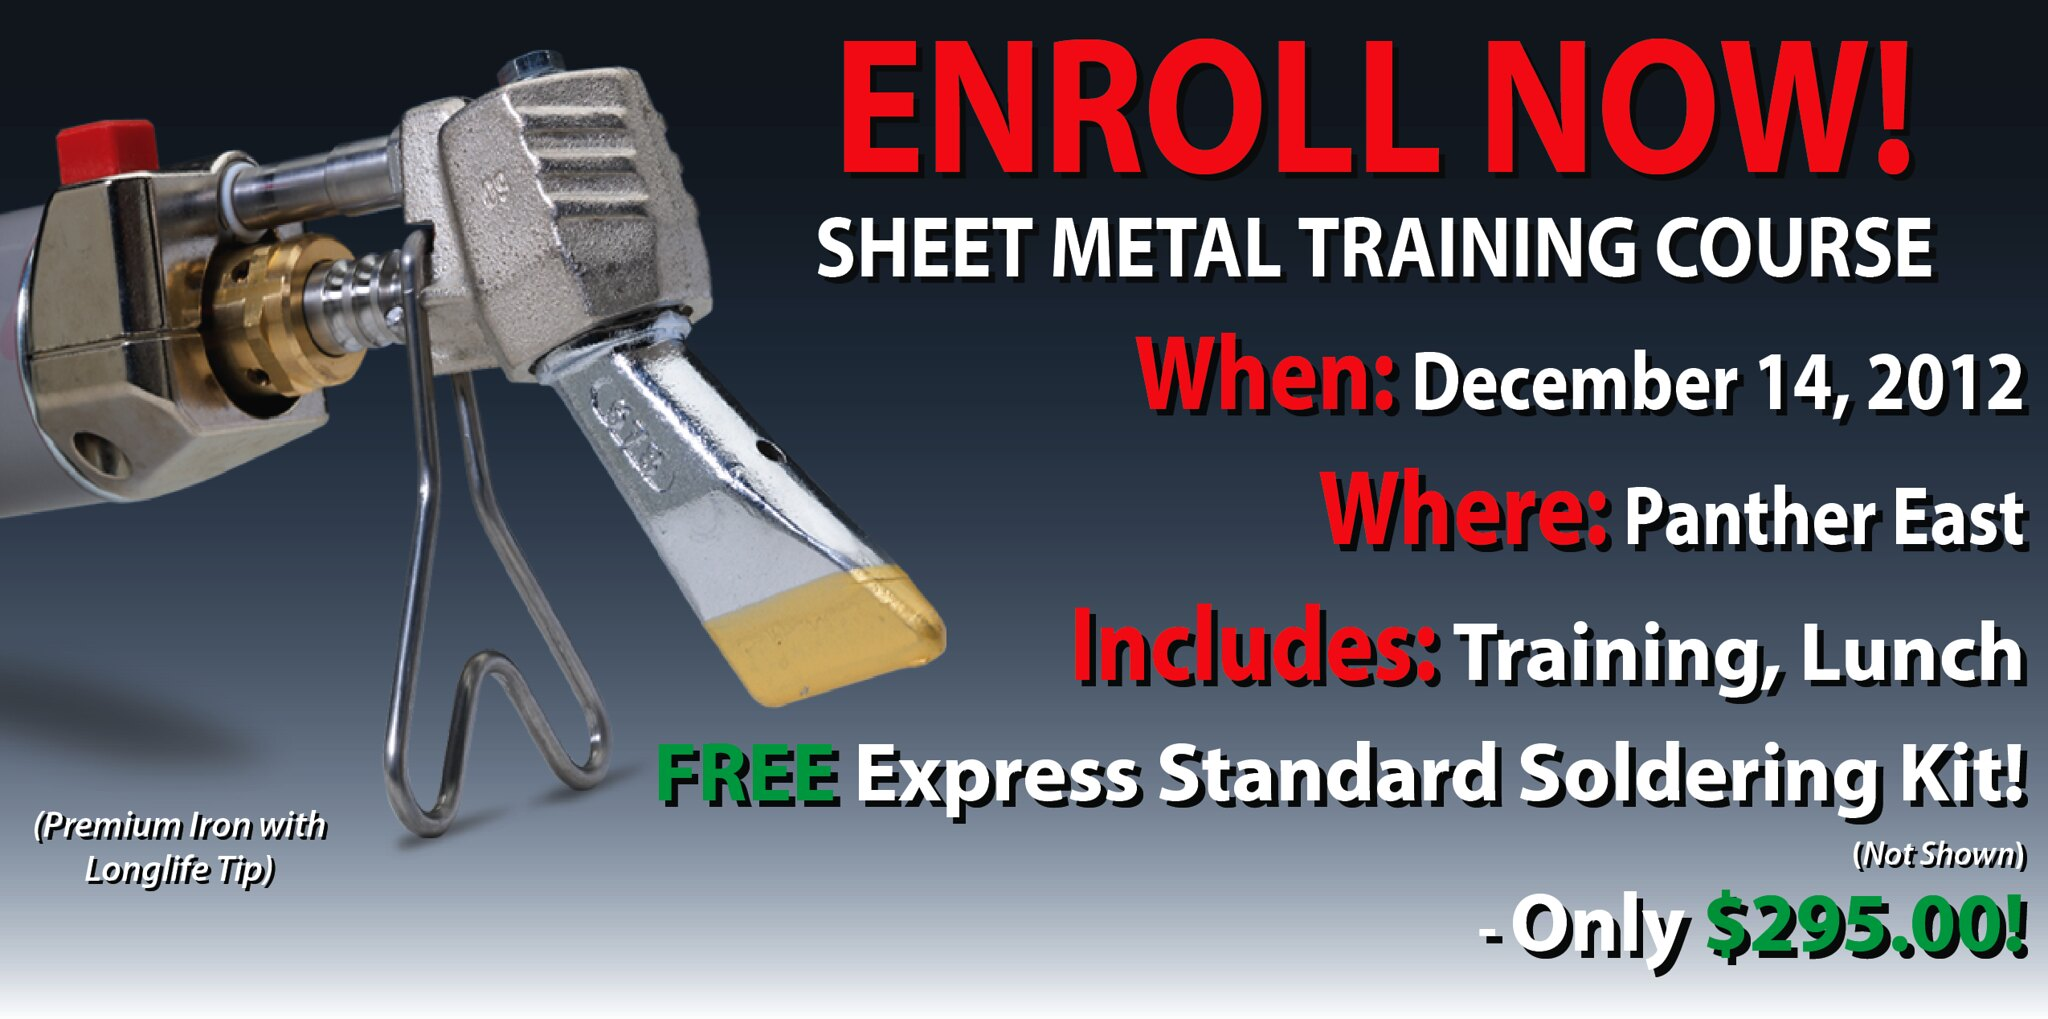 Express Sheet Metal Training at Panther East